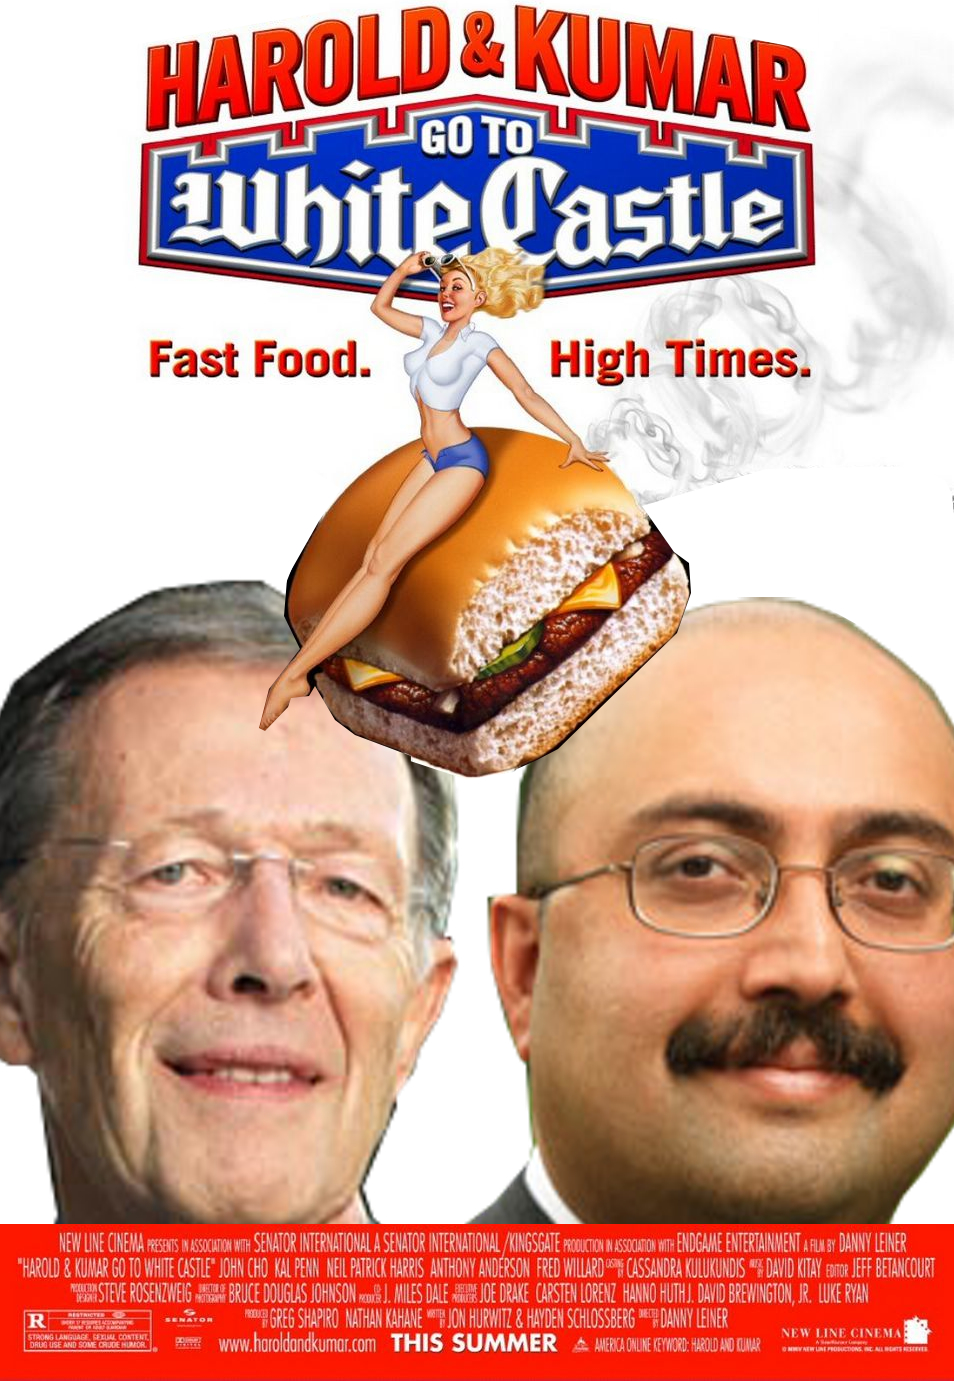 Coming to a White Castle near you!